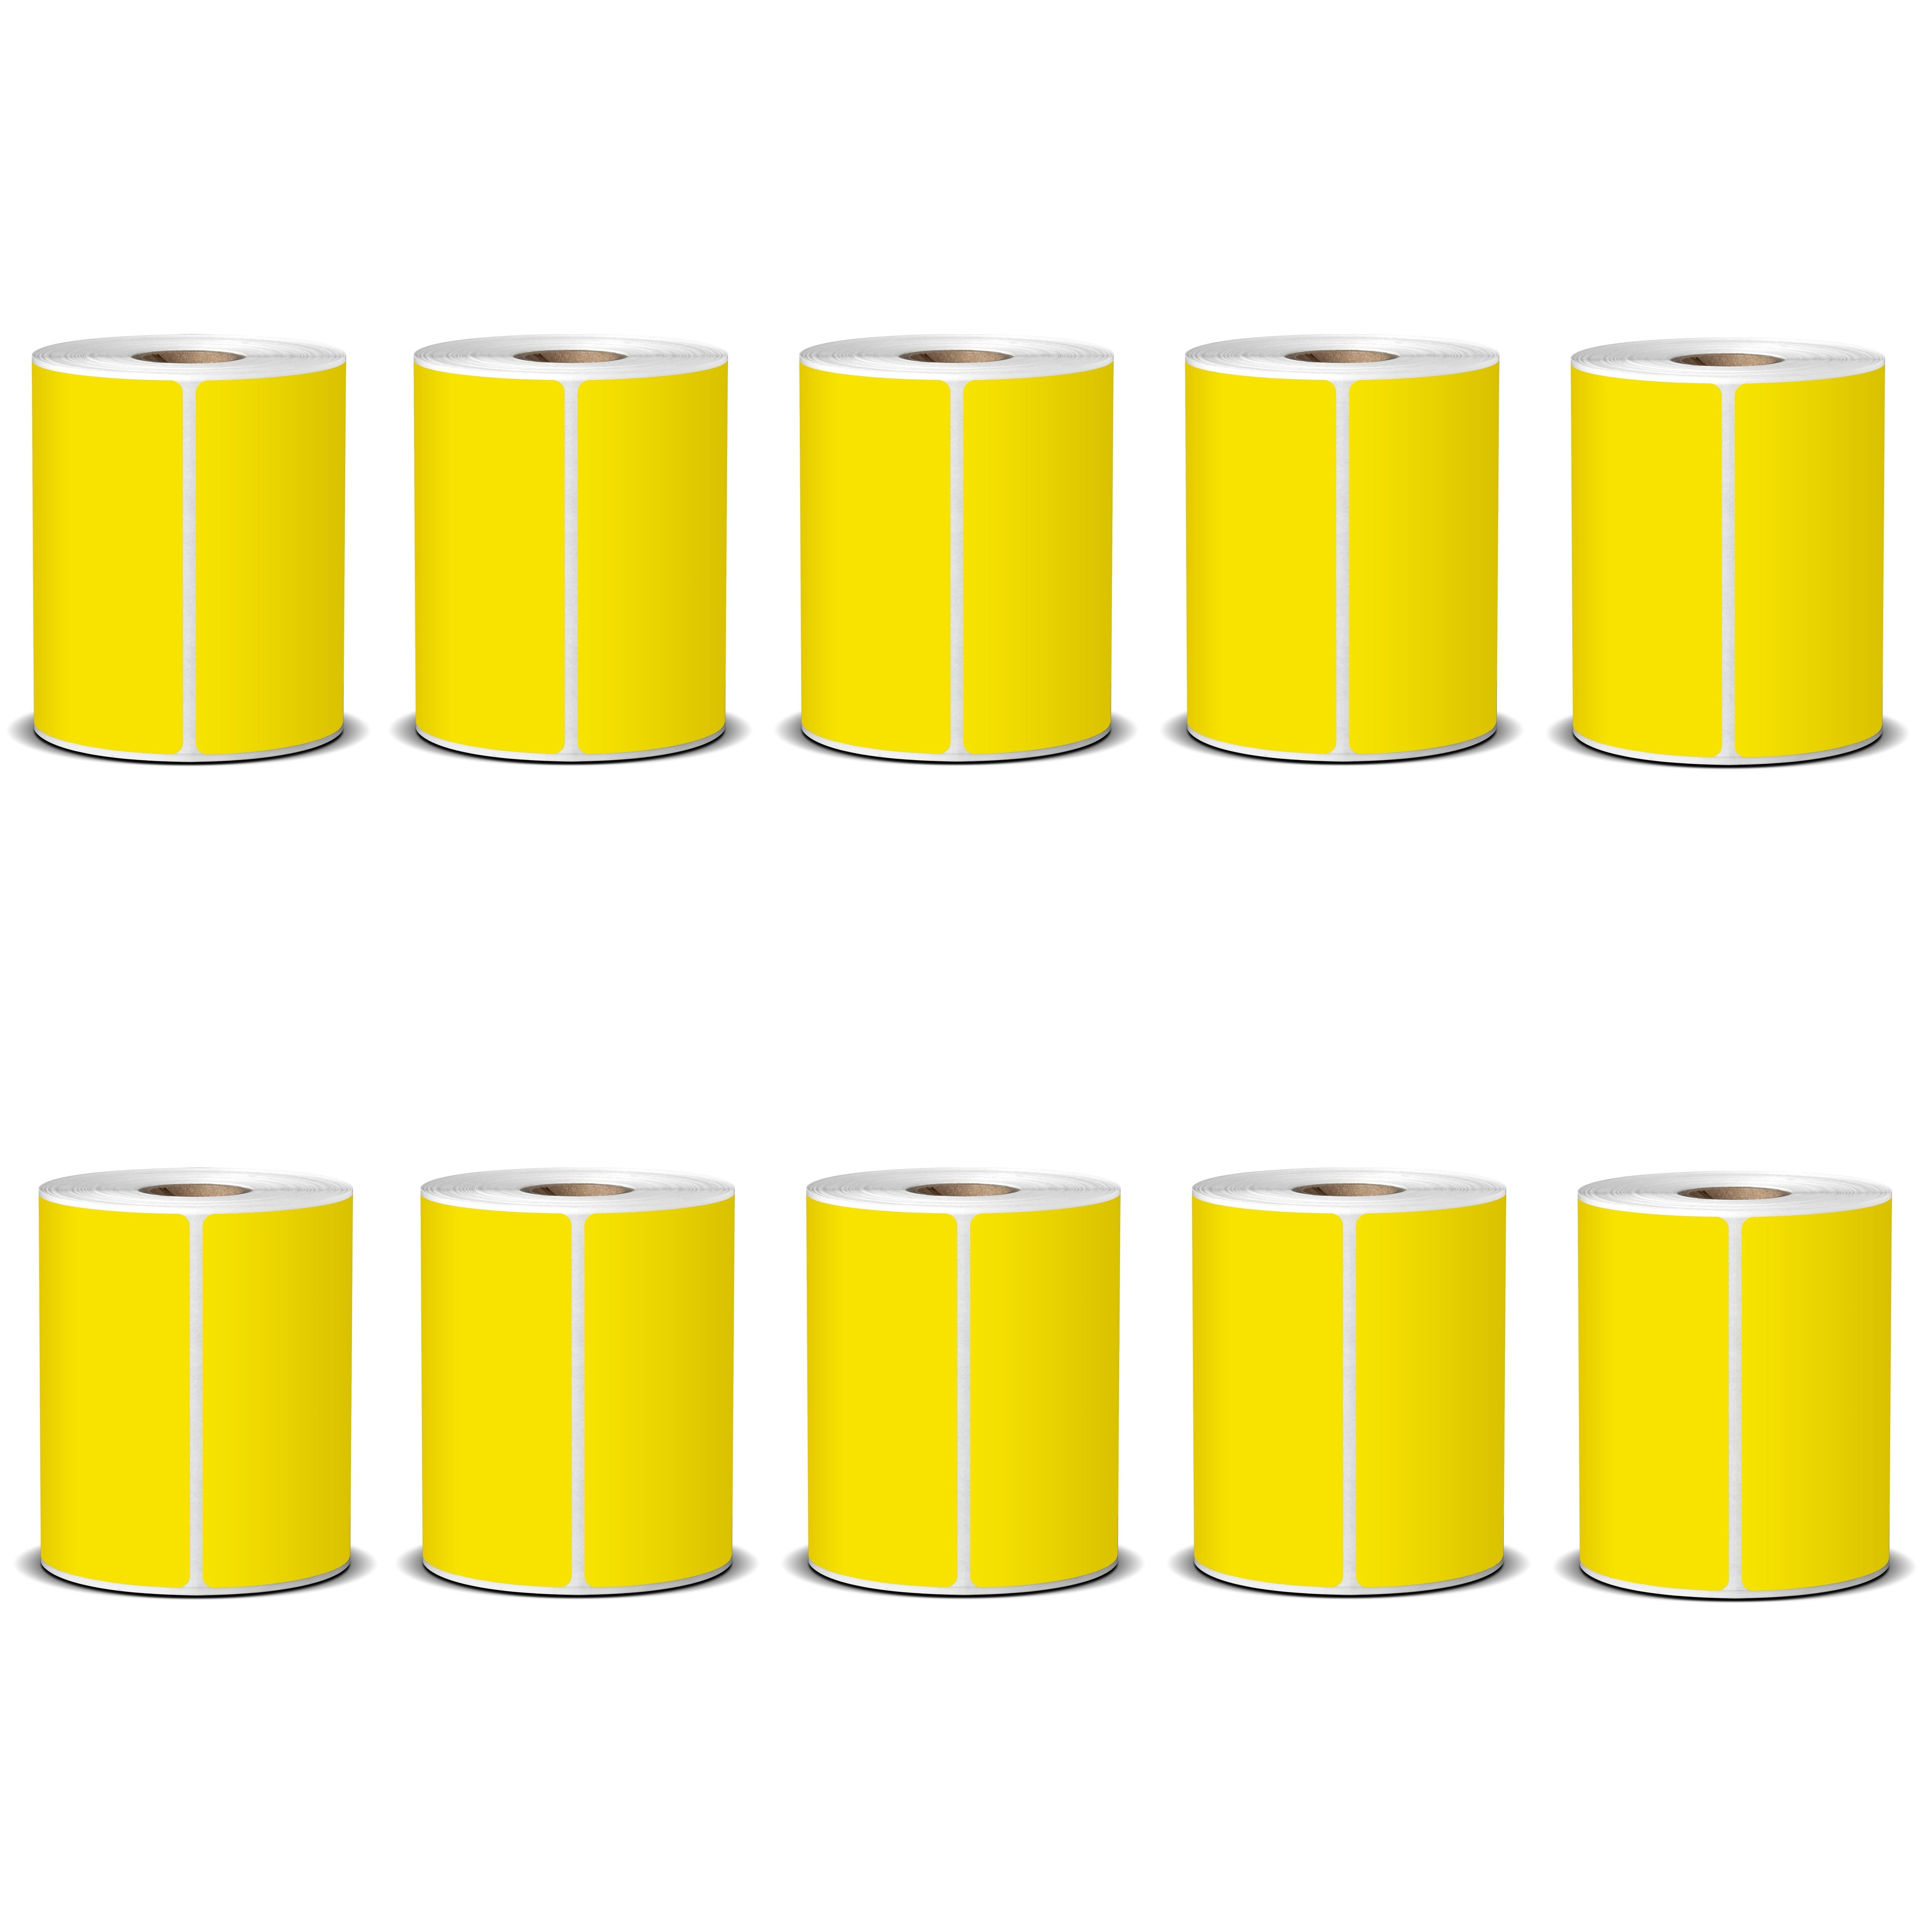 View 100X150 Yellow Direct Thermal Labels 400/Roll - 10 Rolls